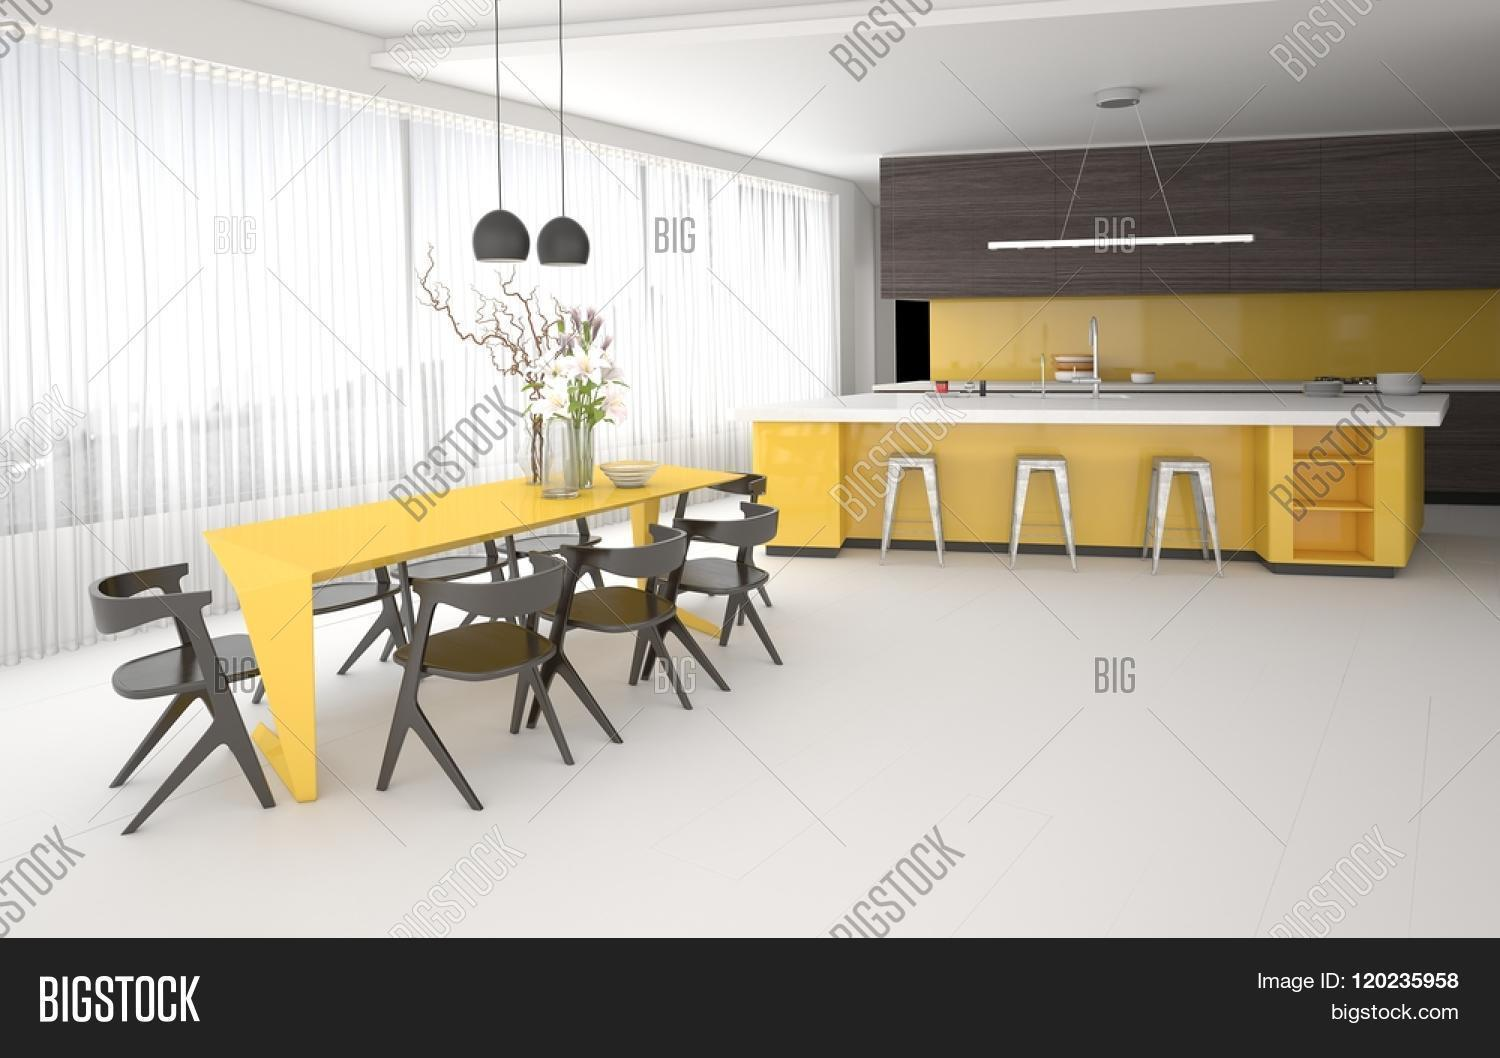 Luxury Elegant Yellow And Grey Kitchen And Dining Room Interior With A Spacious Open Plan Room